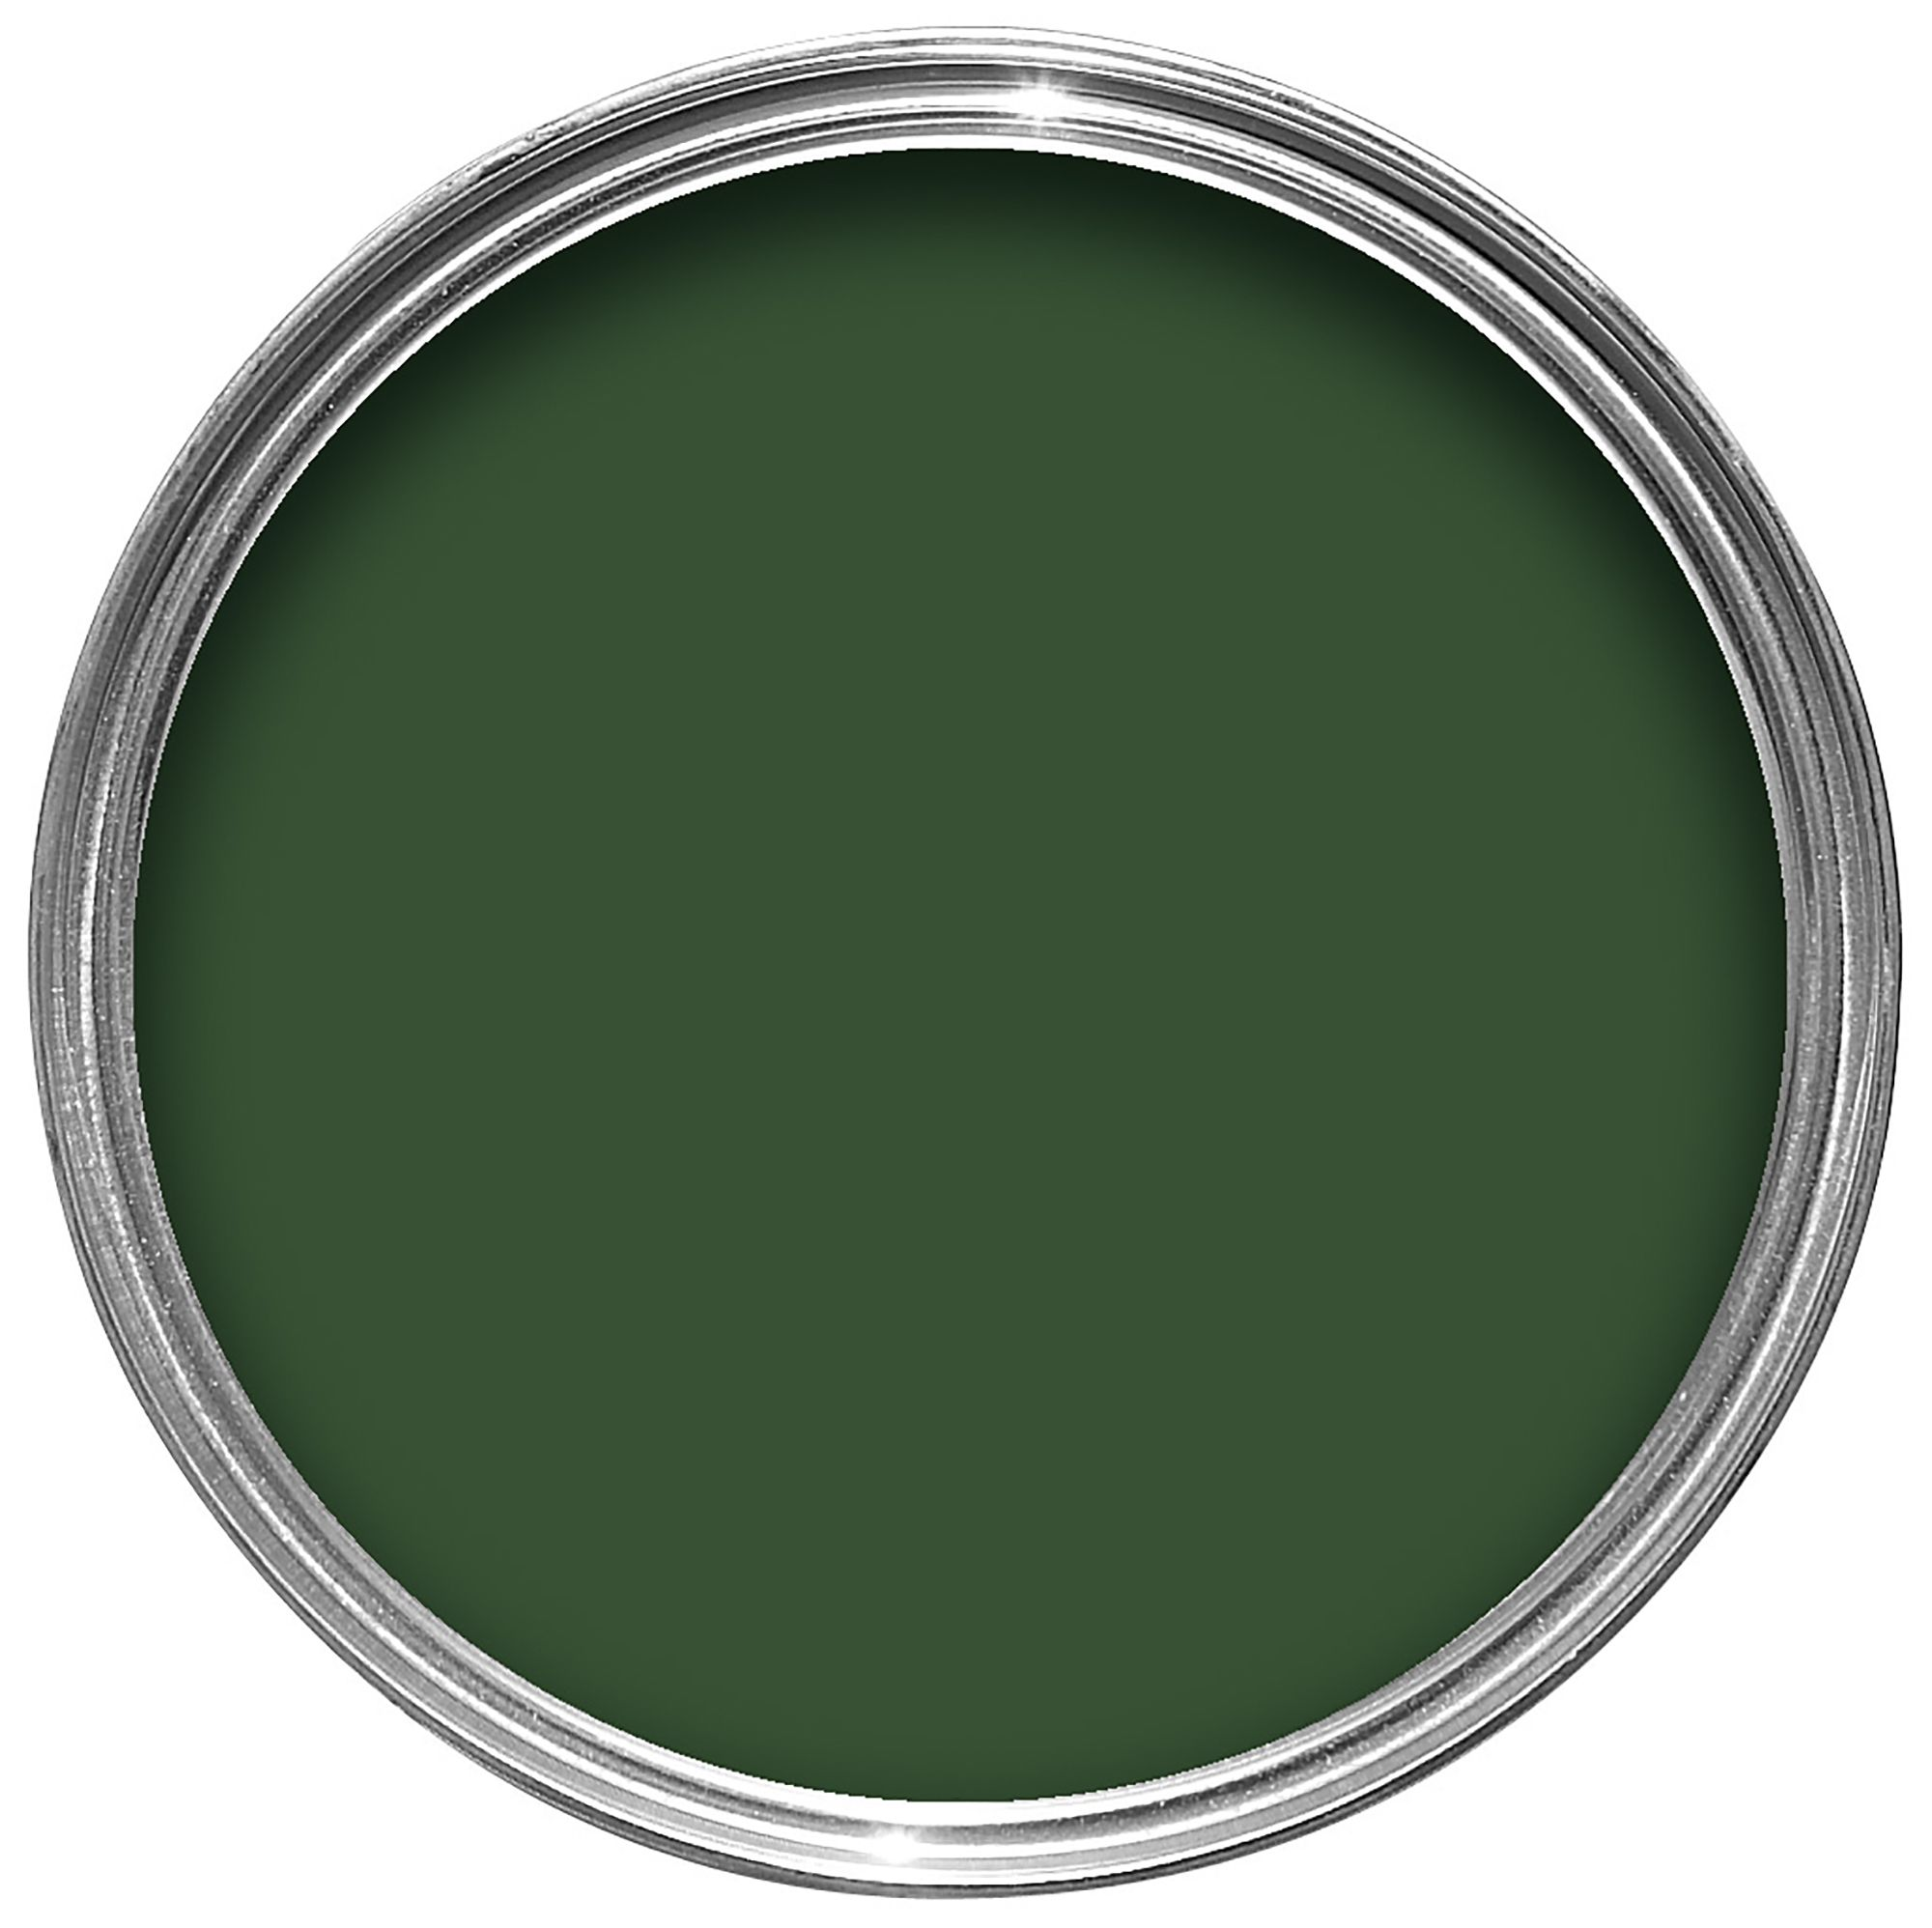 Colours exterior buckingham green gloss wood metal paint 750ml departments diy at b q - Exterior paint colours for wood pict ...